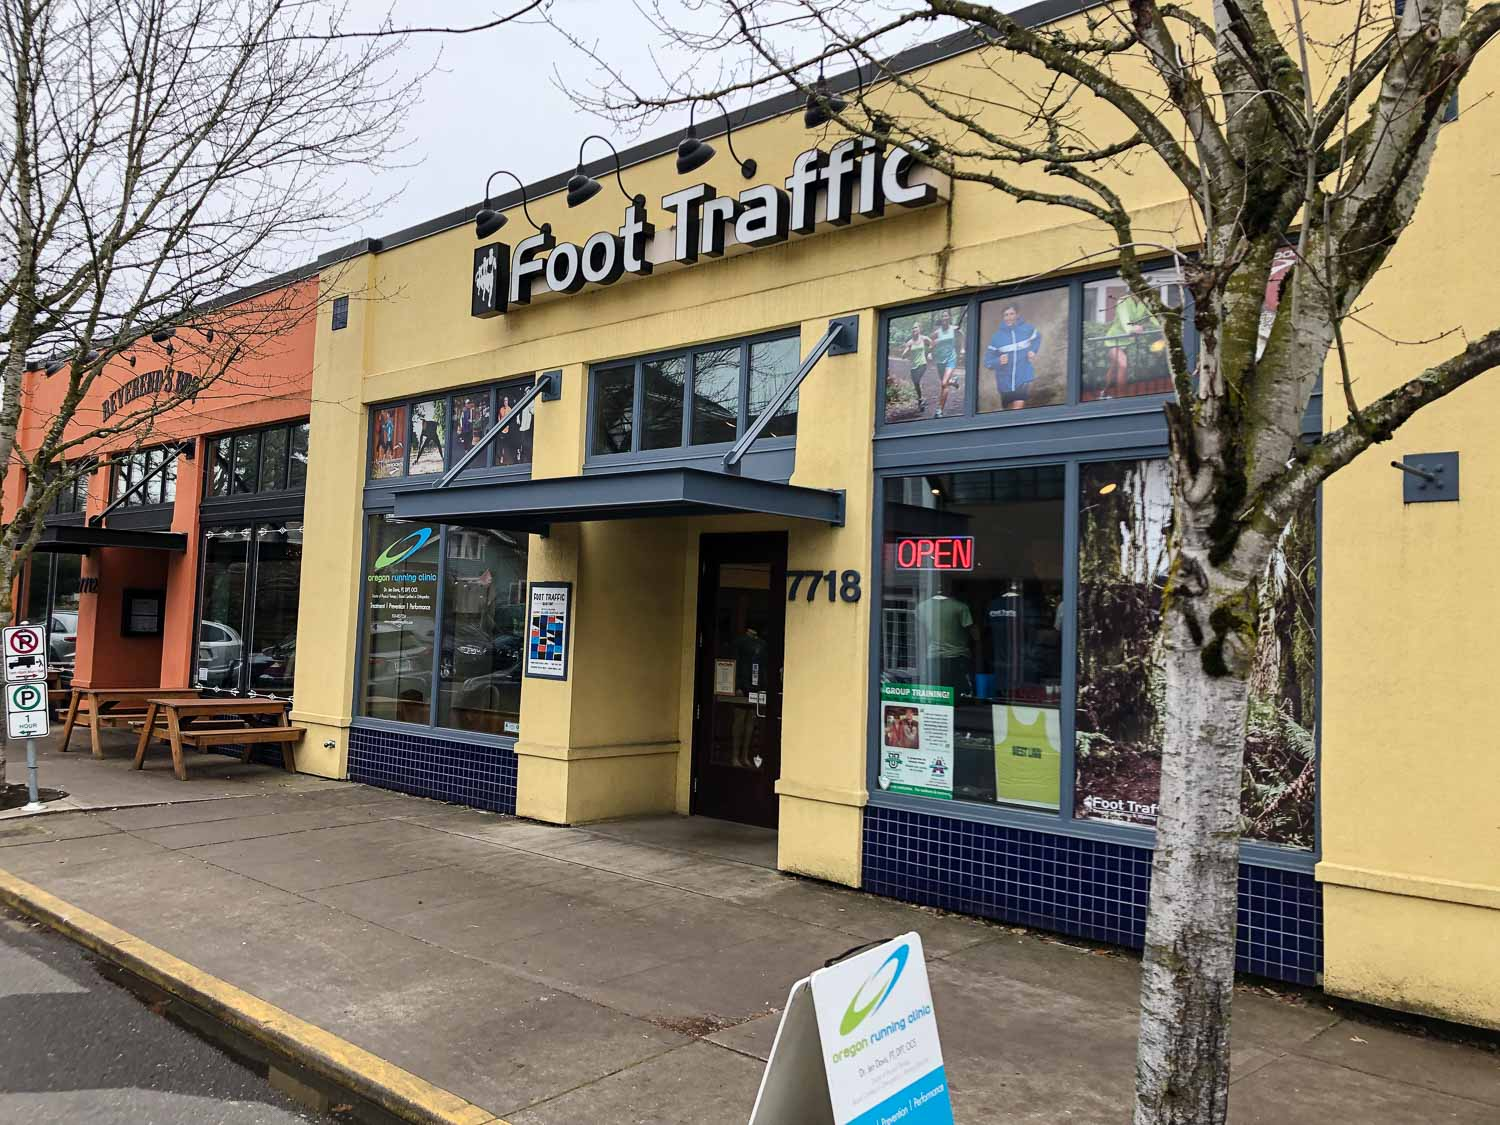 visit-sellwood-moreland-business-alliance_foot-traffic.jpg